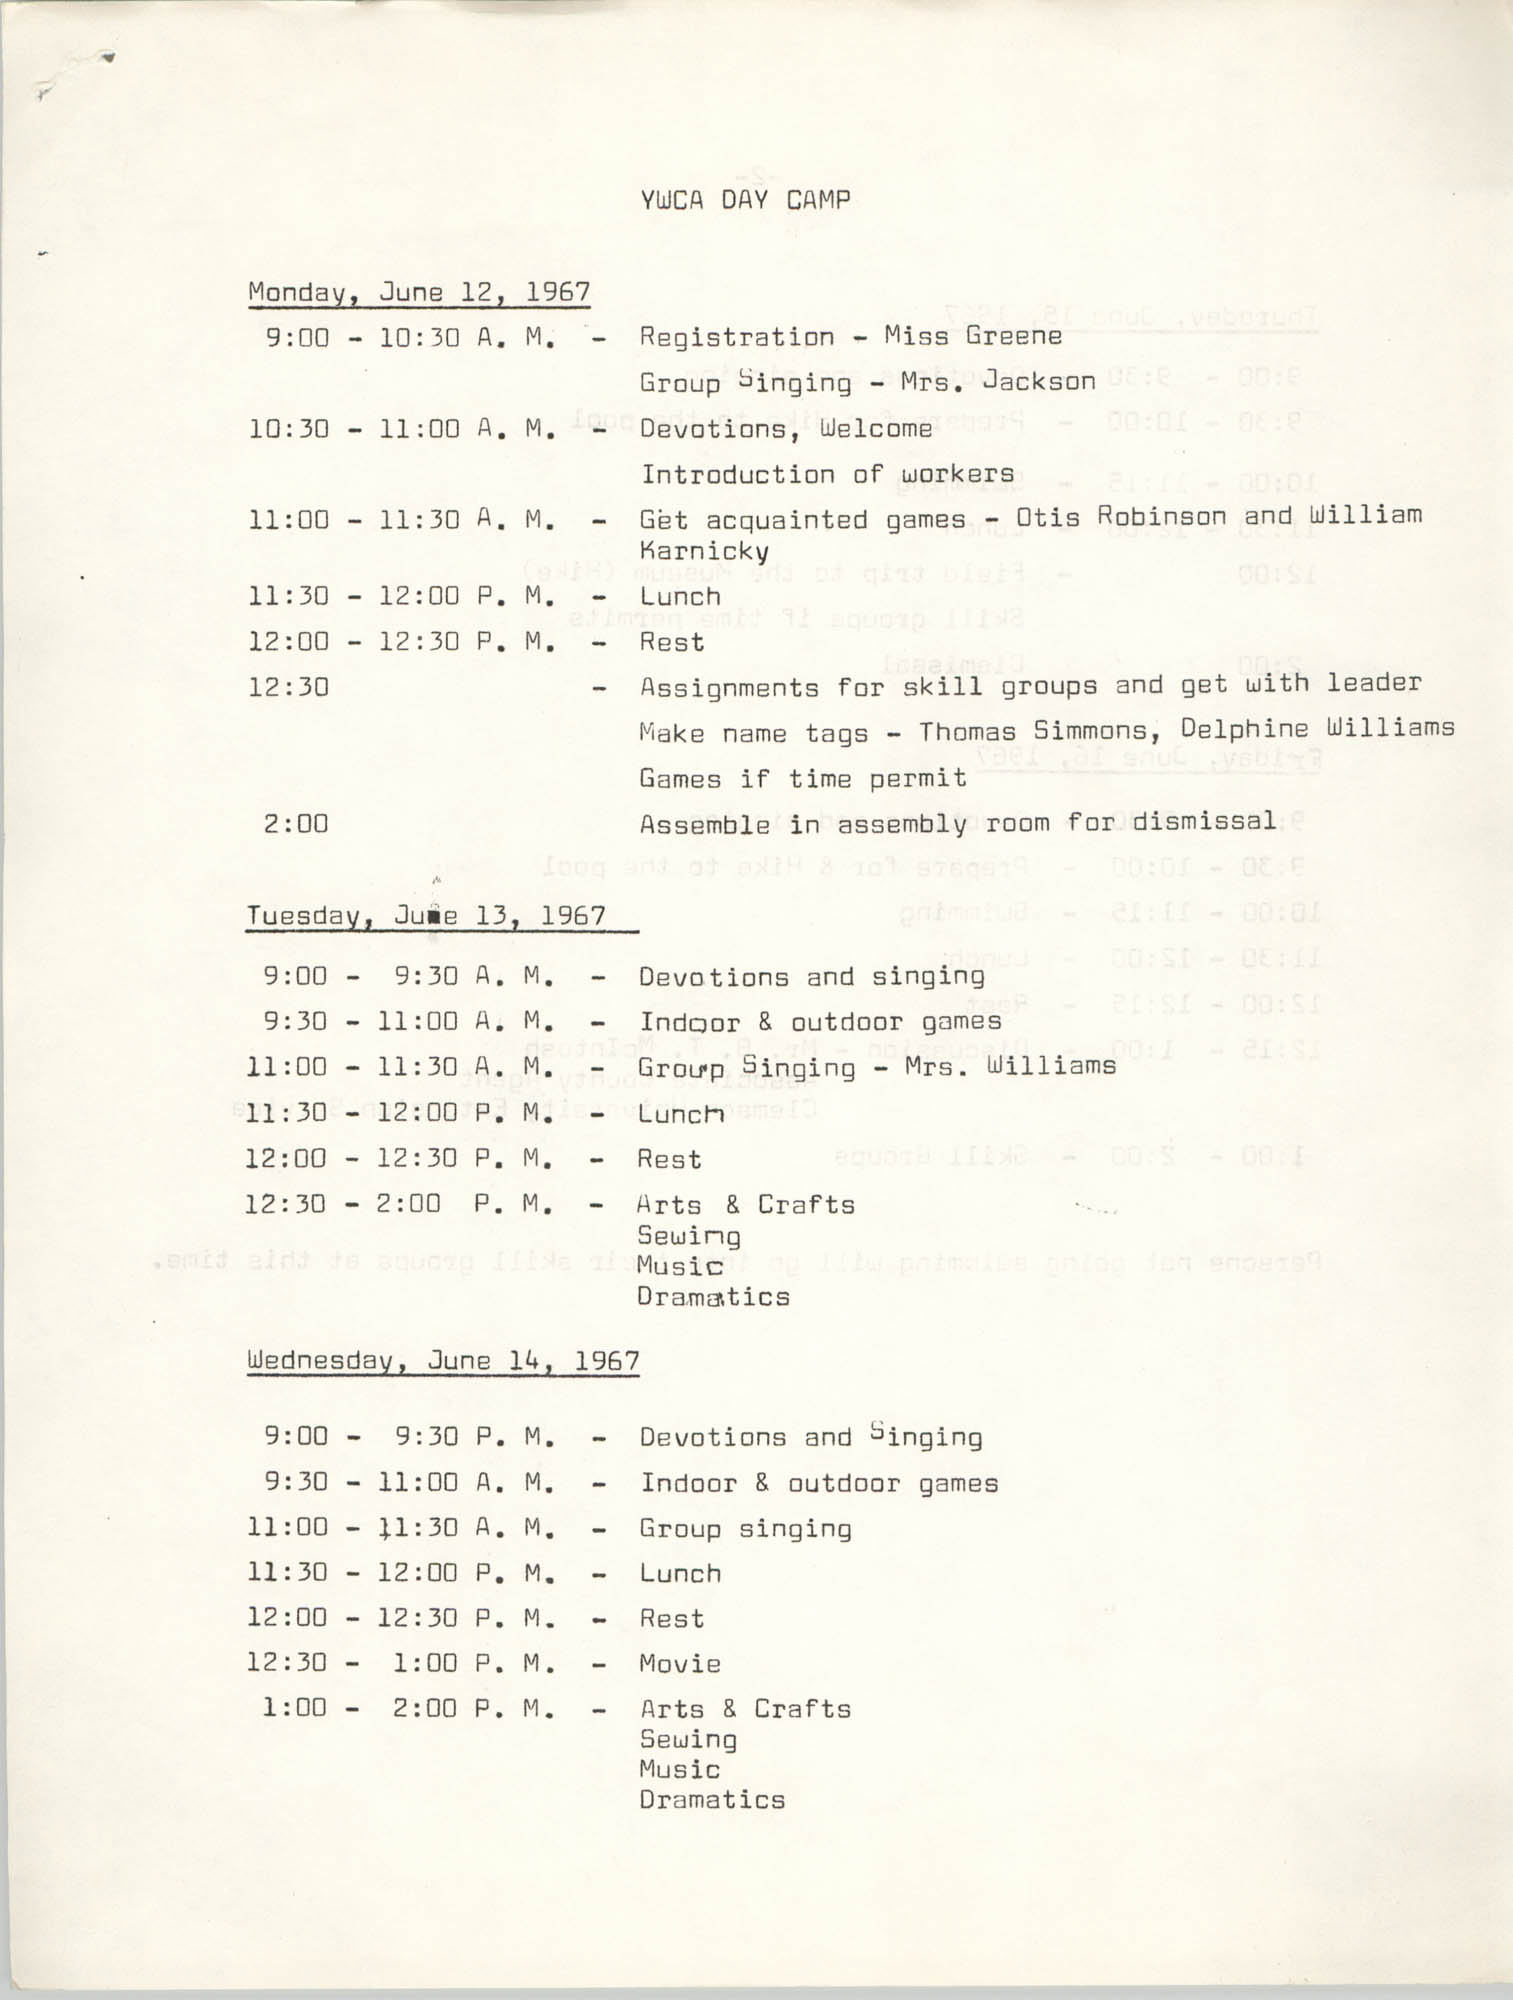 Coming Street Y.W.C.A. Day Camp 1967, Materials